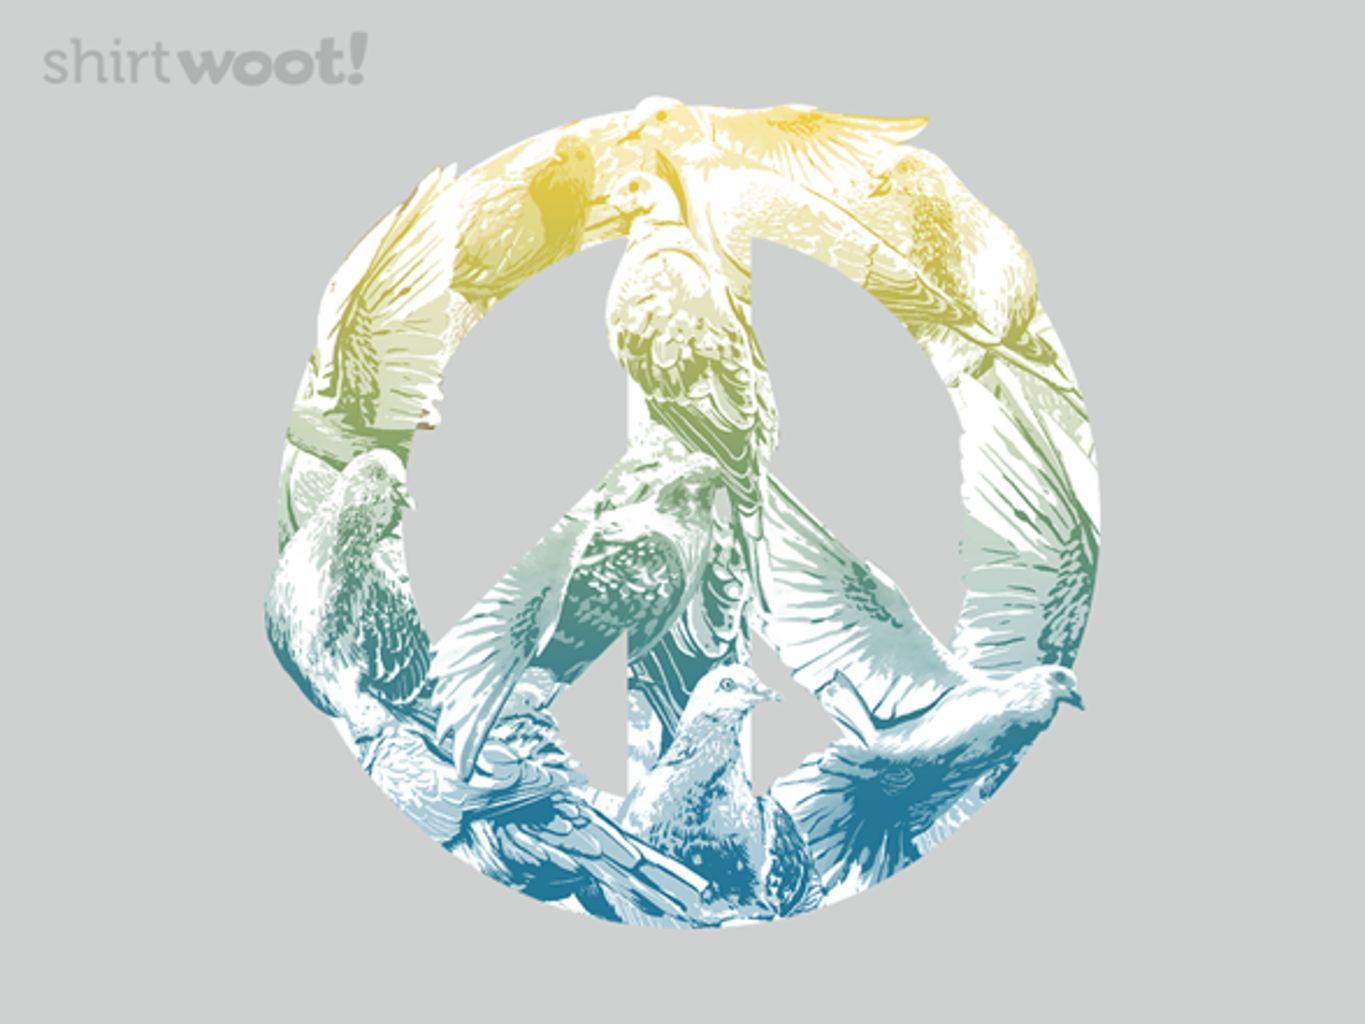 Woot!: Pigeons for Peace - $15.00 + Free shipping